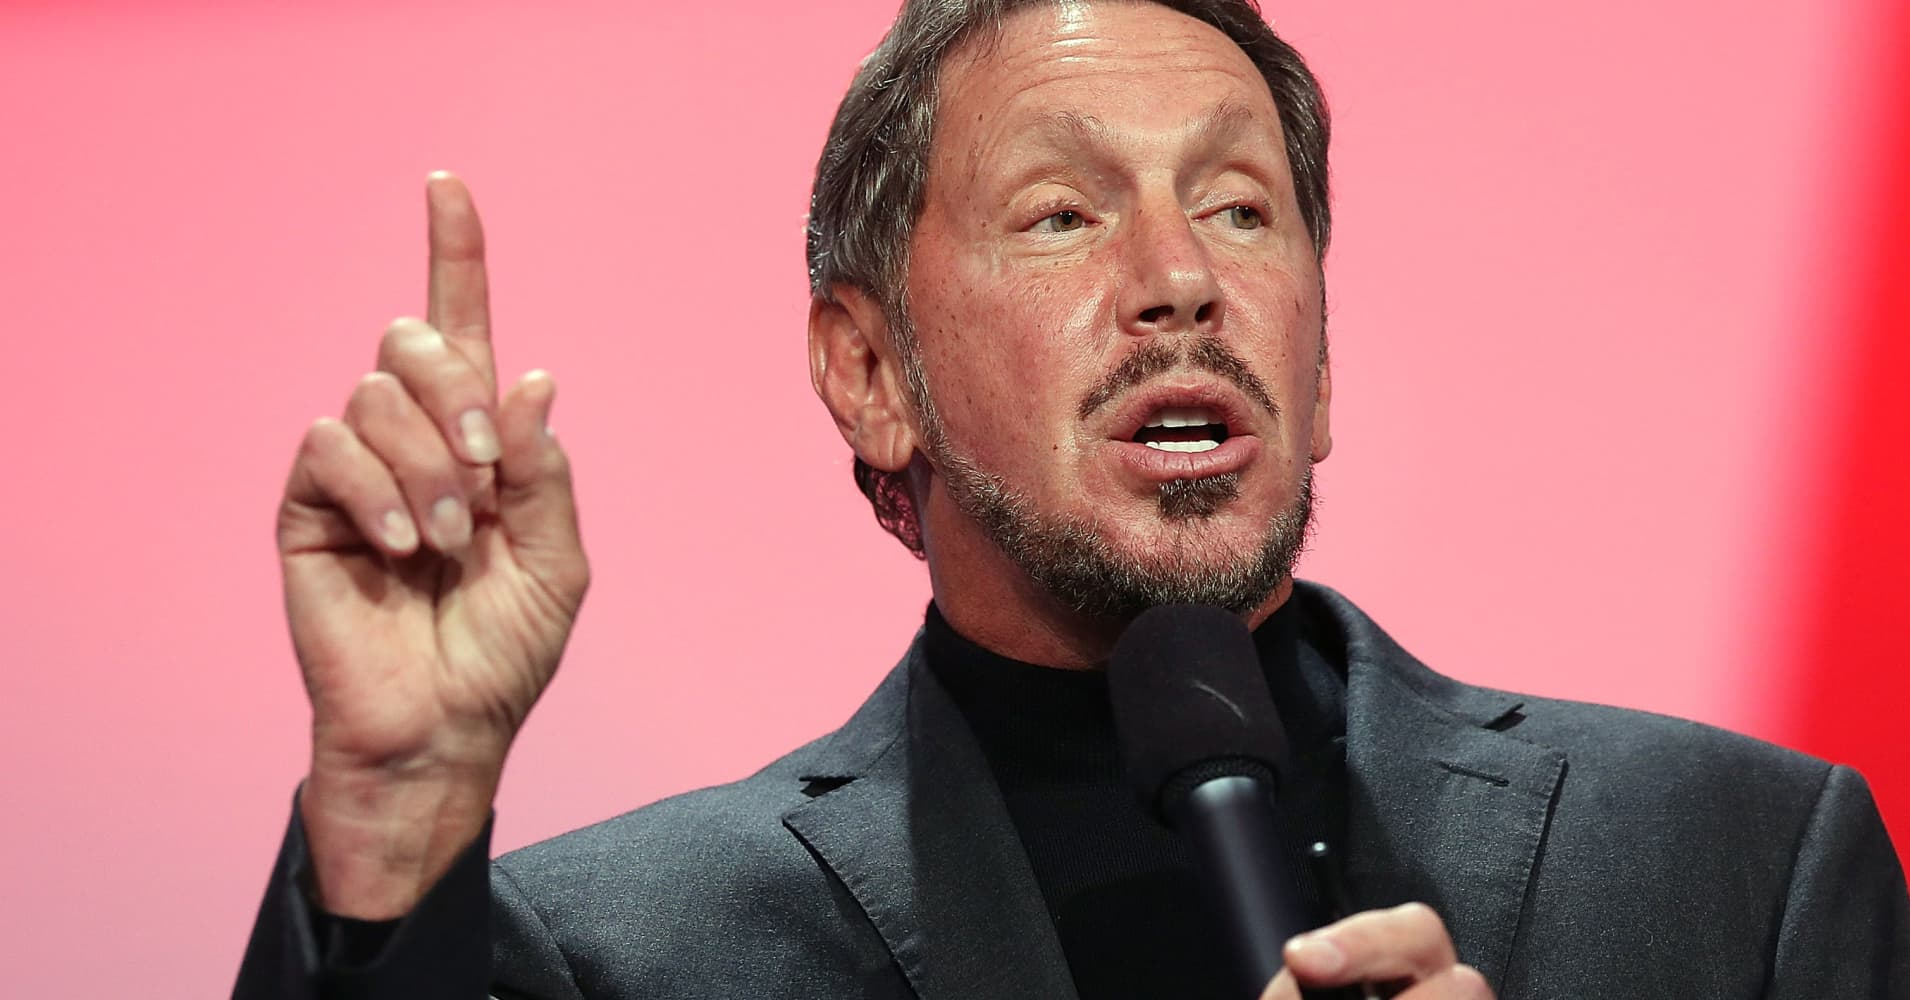 Oracle CEO Larry Ellison steps down, will be replaced by Mark Hurd and Safra Catz